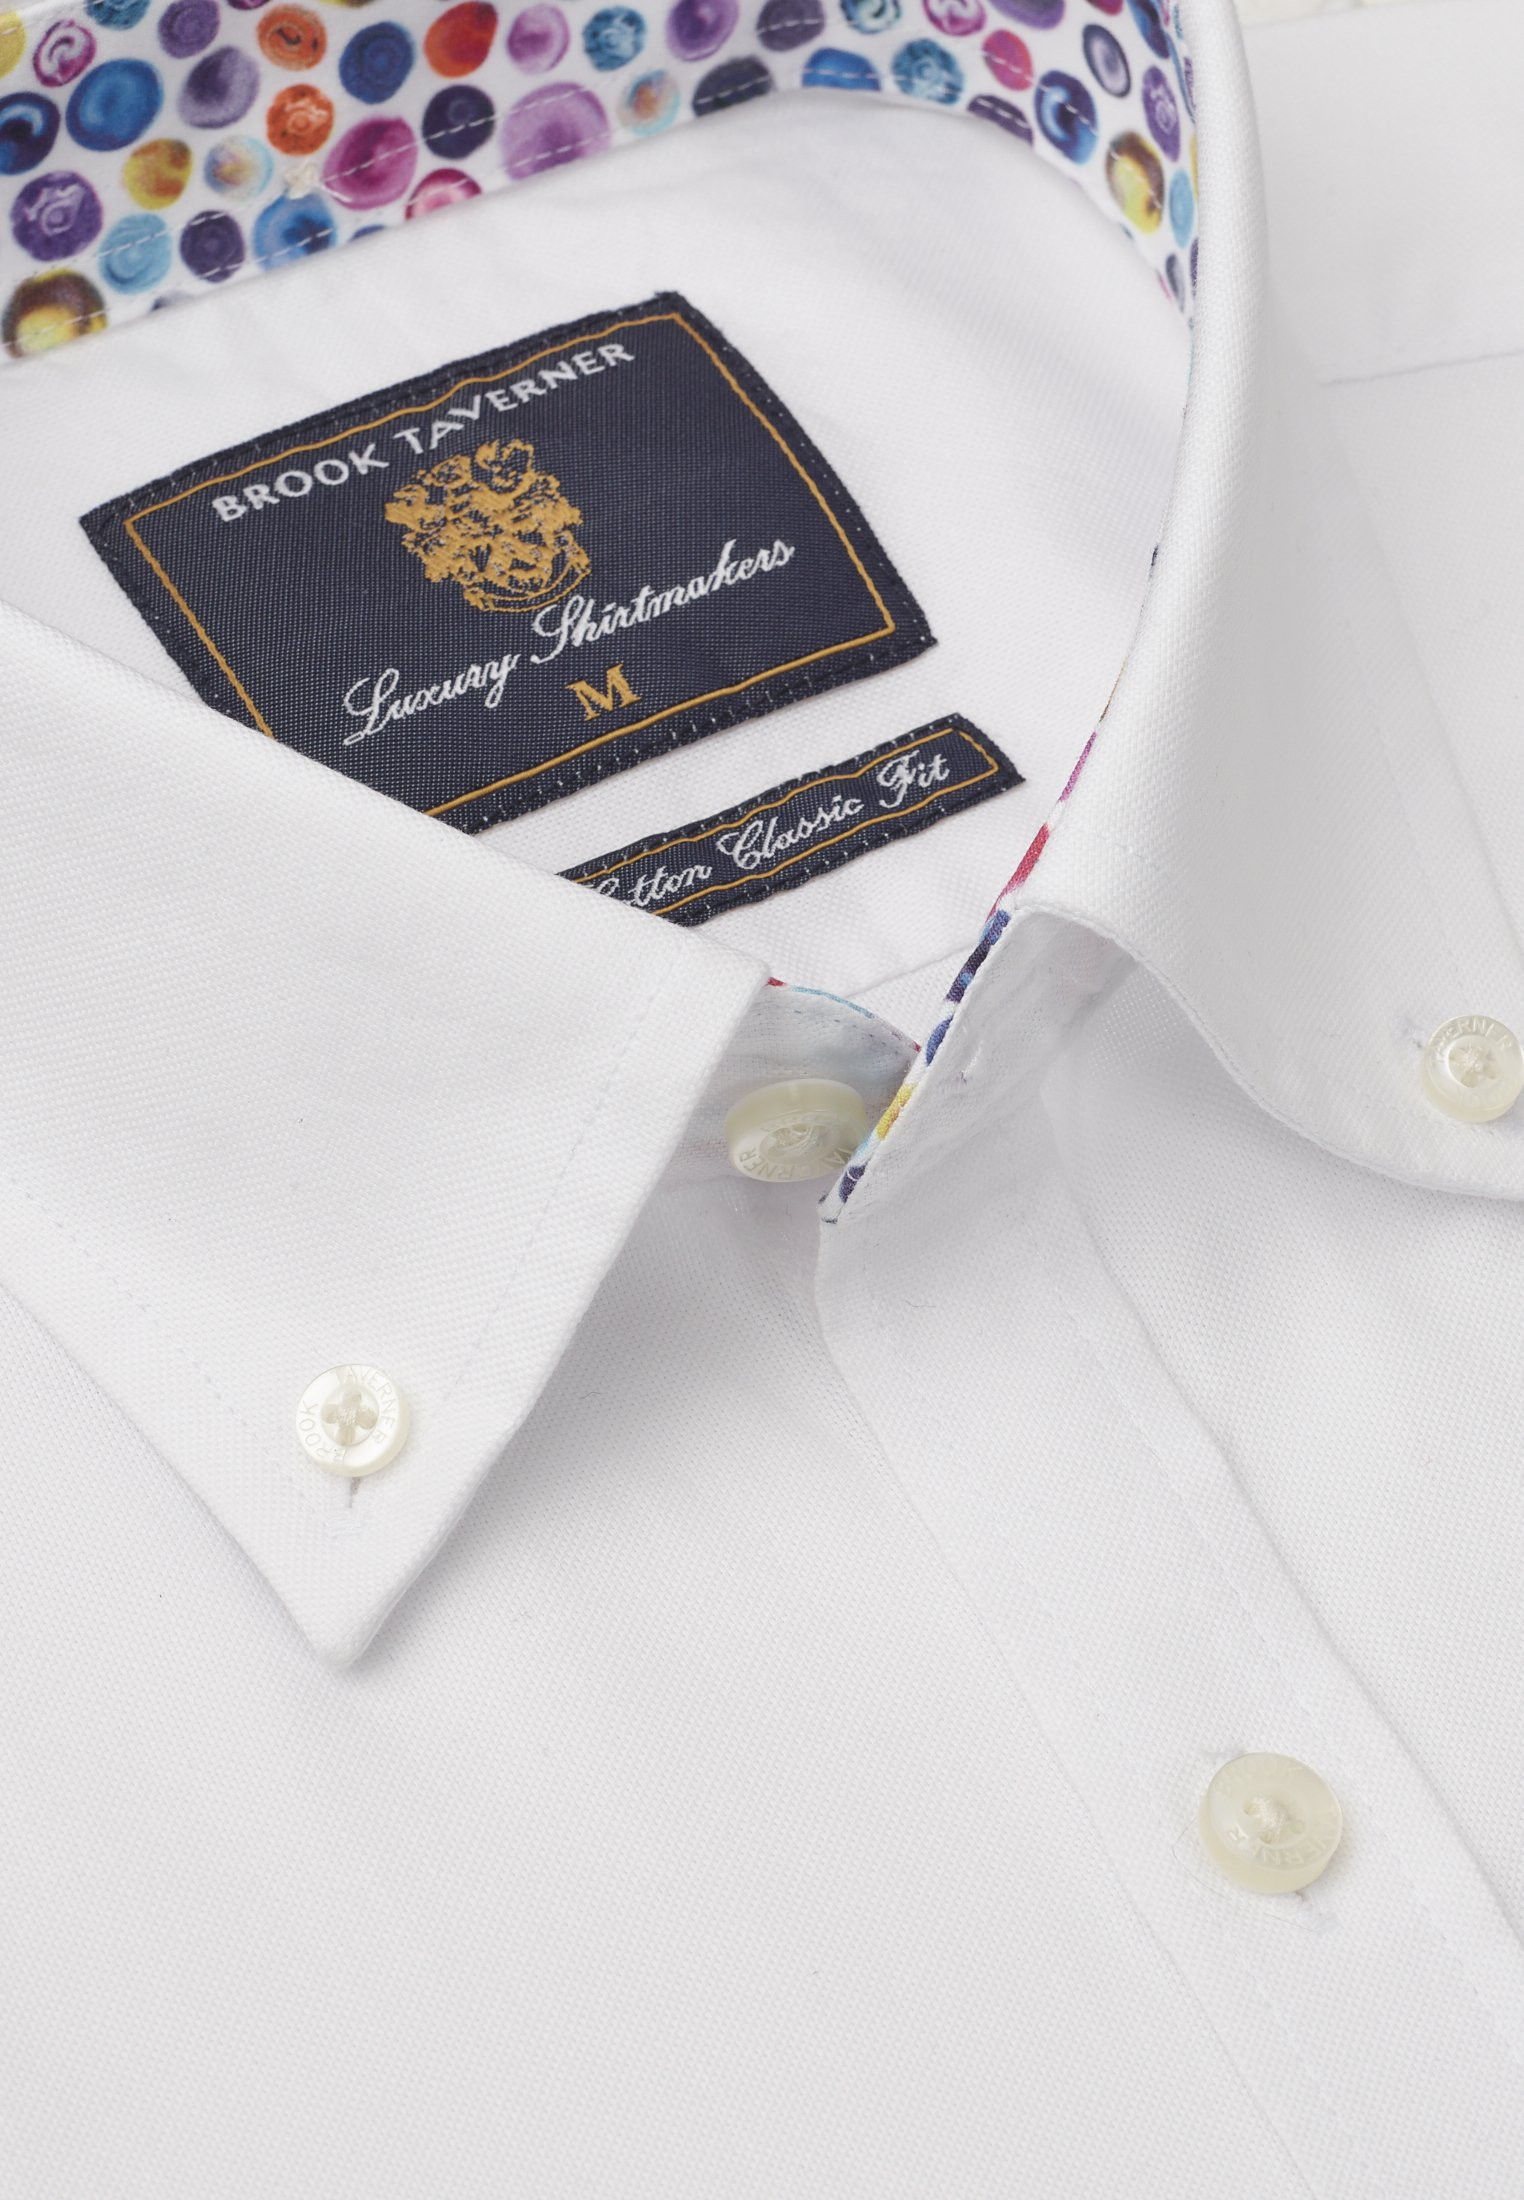 Long And Short Sleeve White Oxford With Coloured Trim Shirt